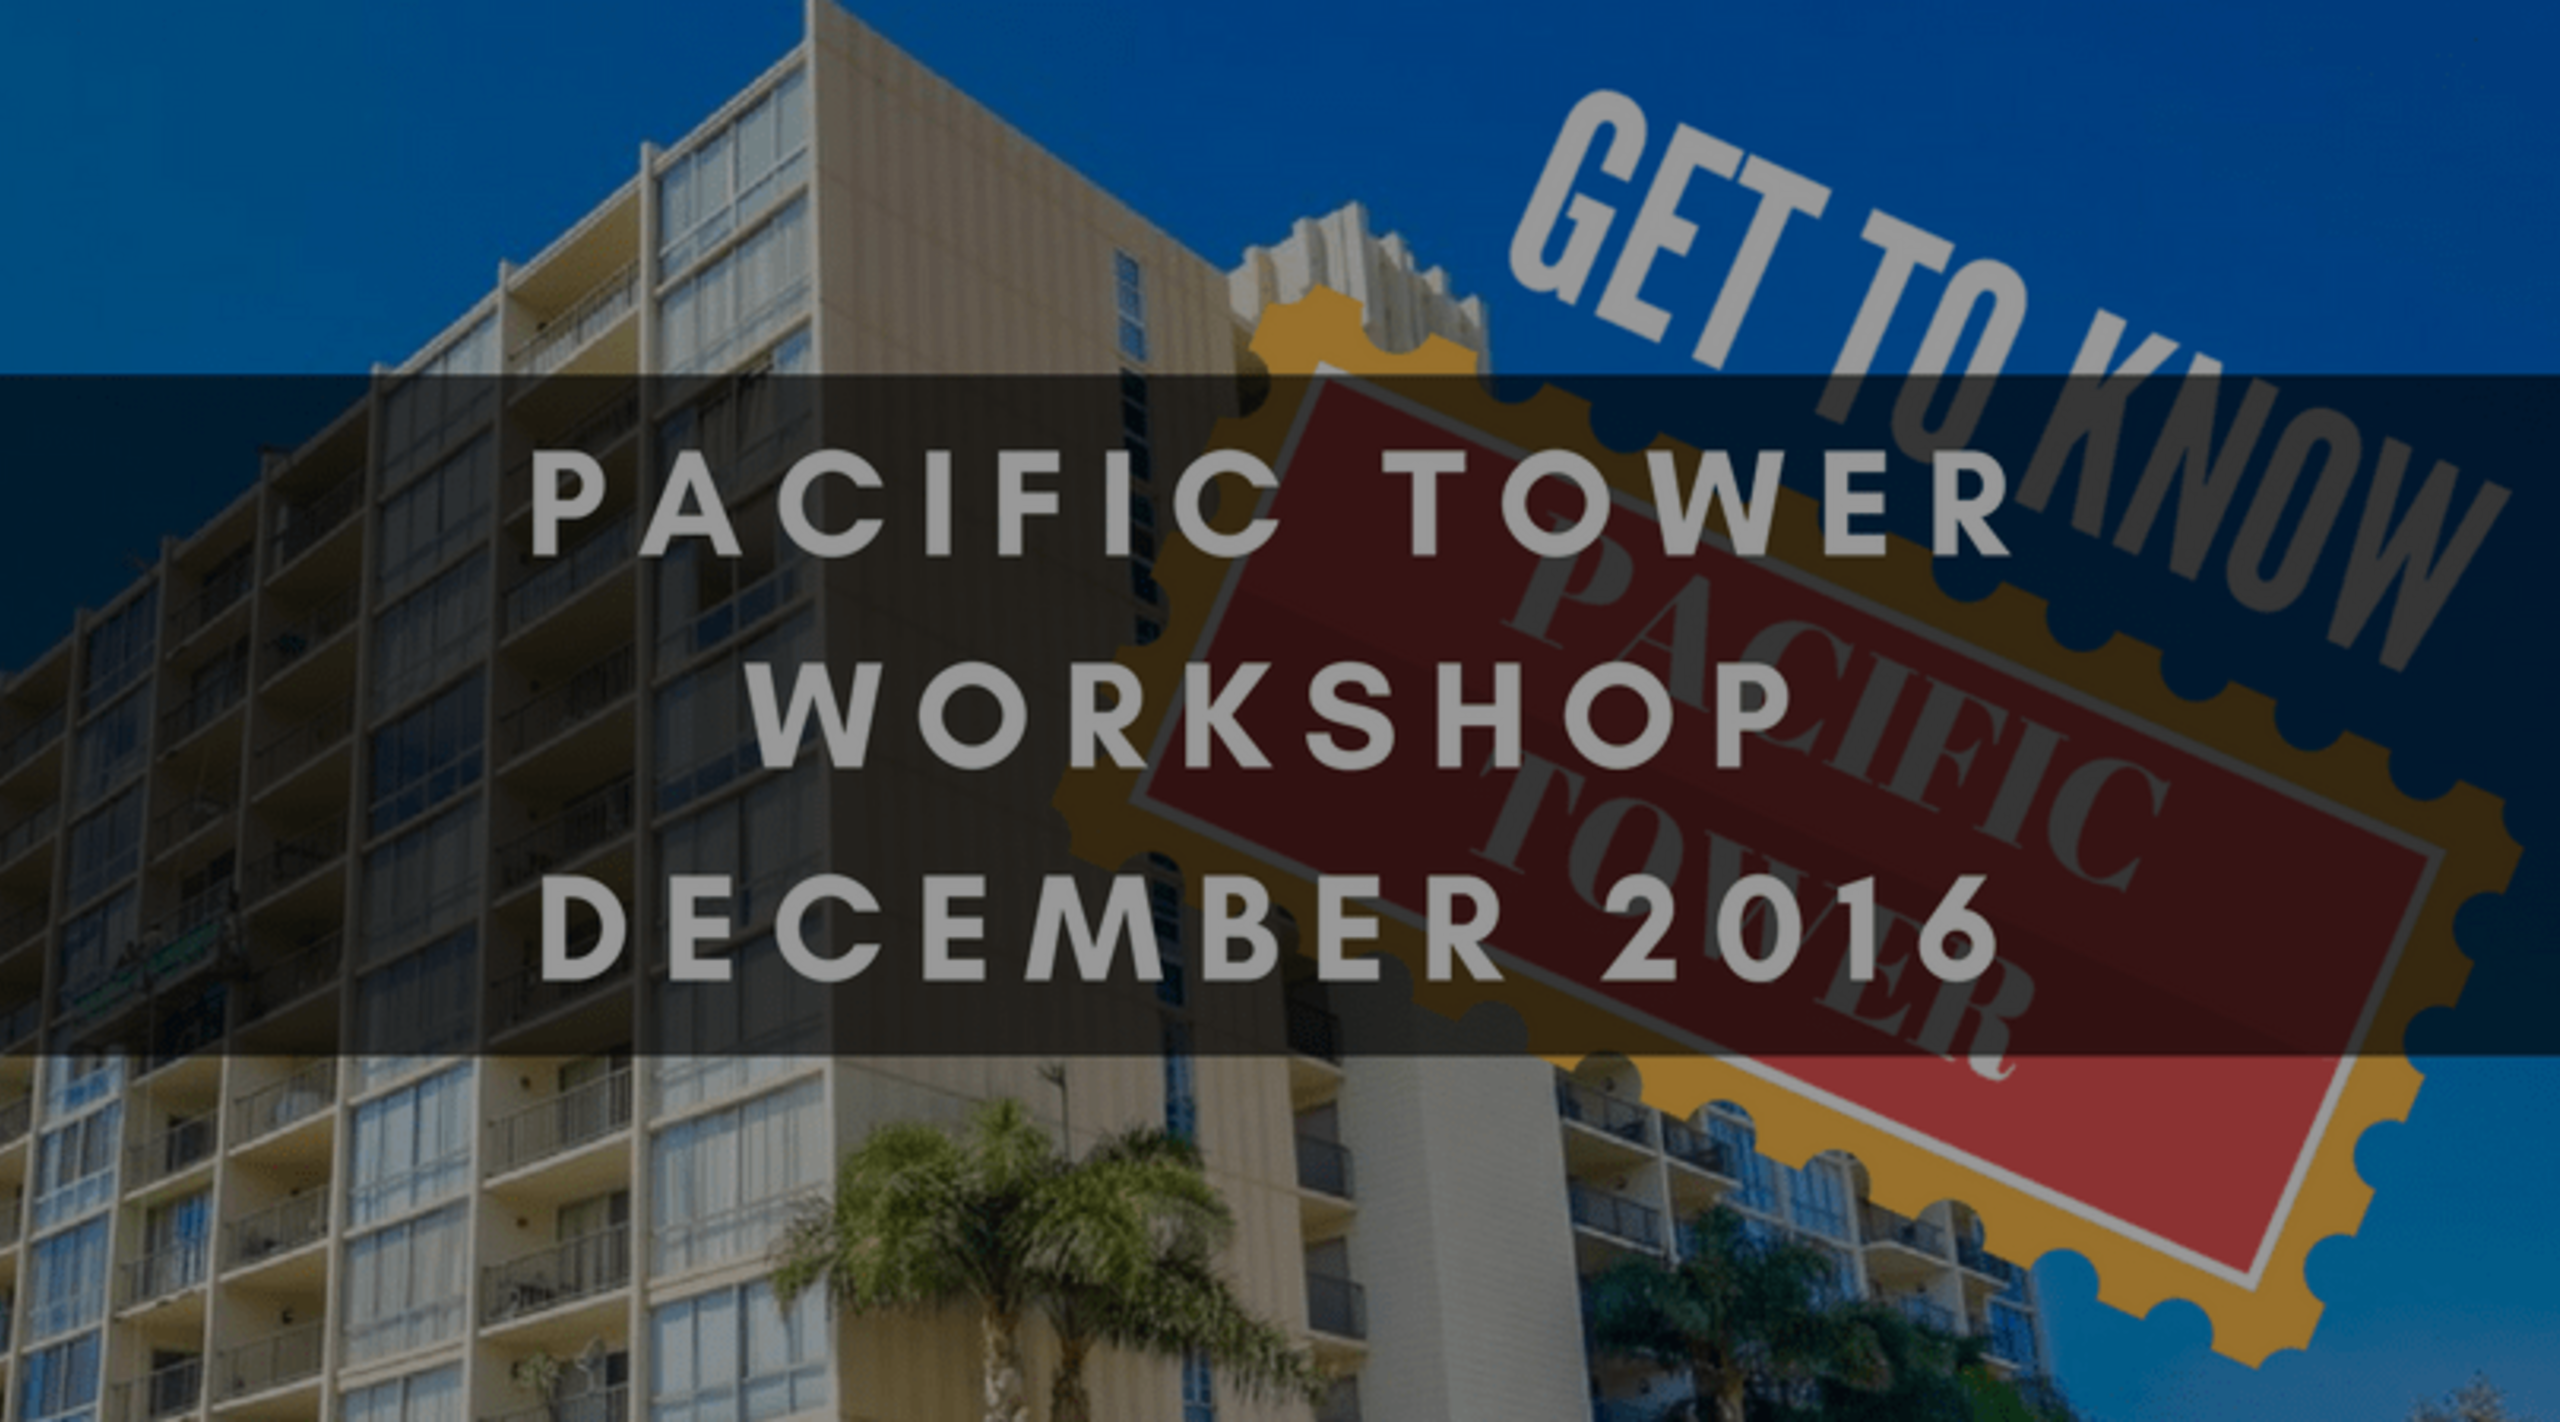 PACIFIC TOWER WORKSHOP | DECEMBER 2016